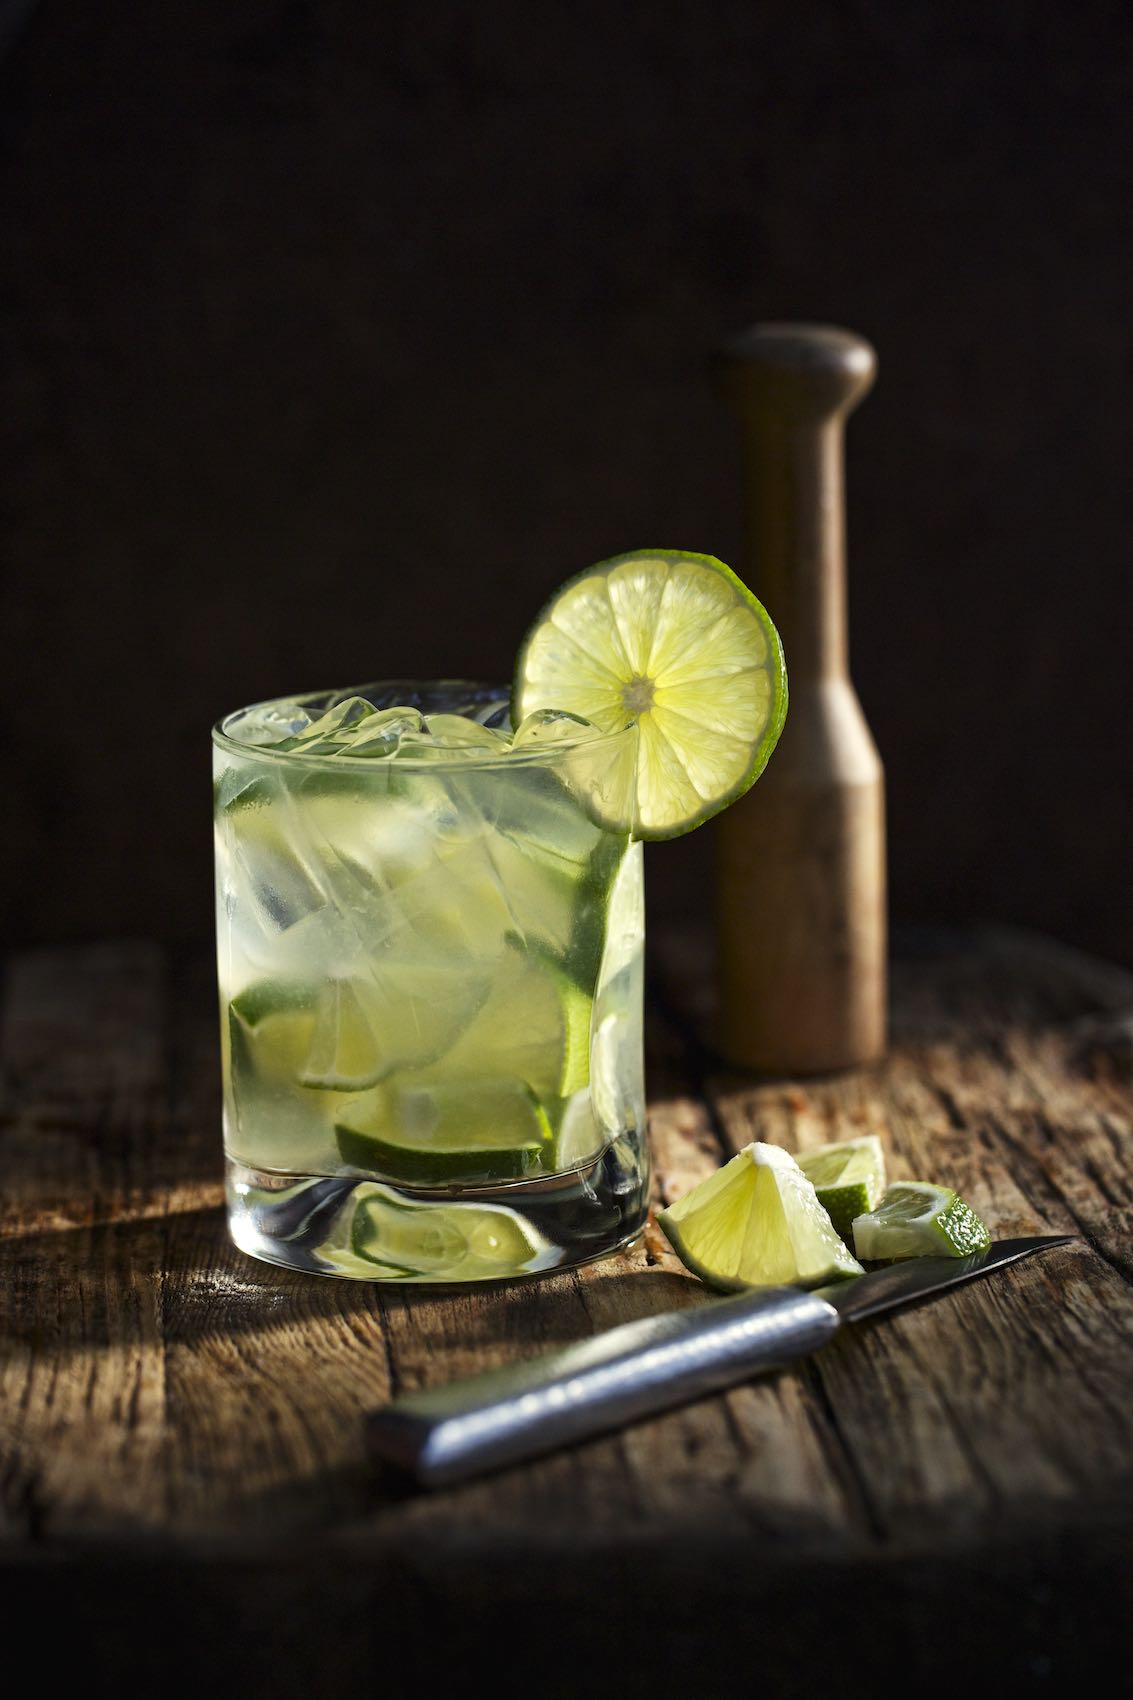 Jody Horton Photography - Caipirinha for Fogo de Chao on cutting board with knife and muddler.